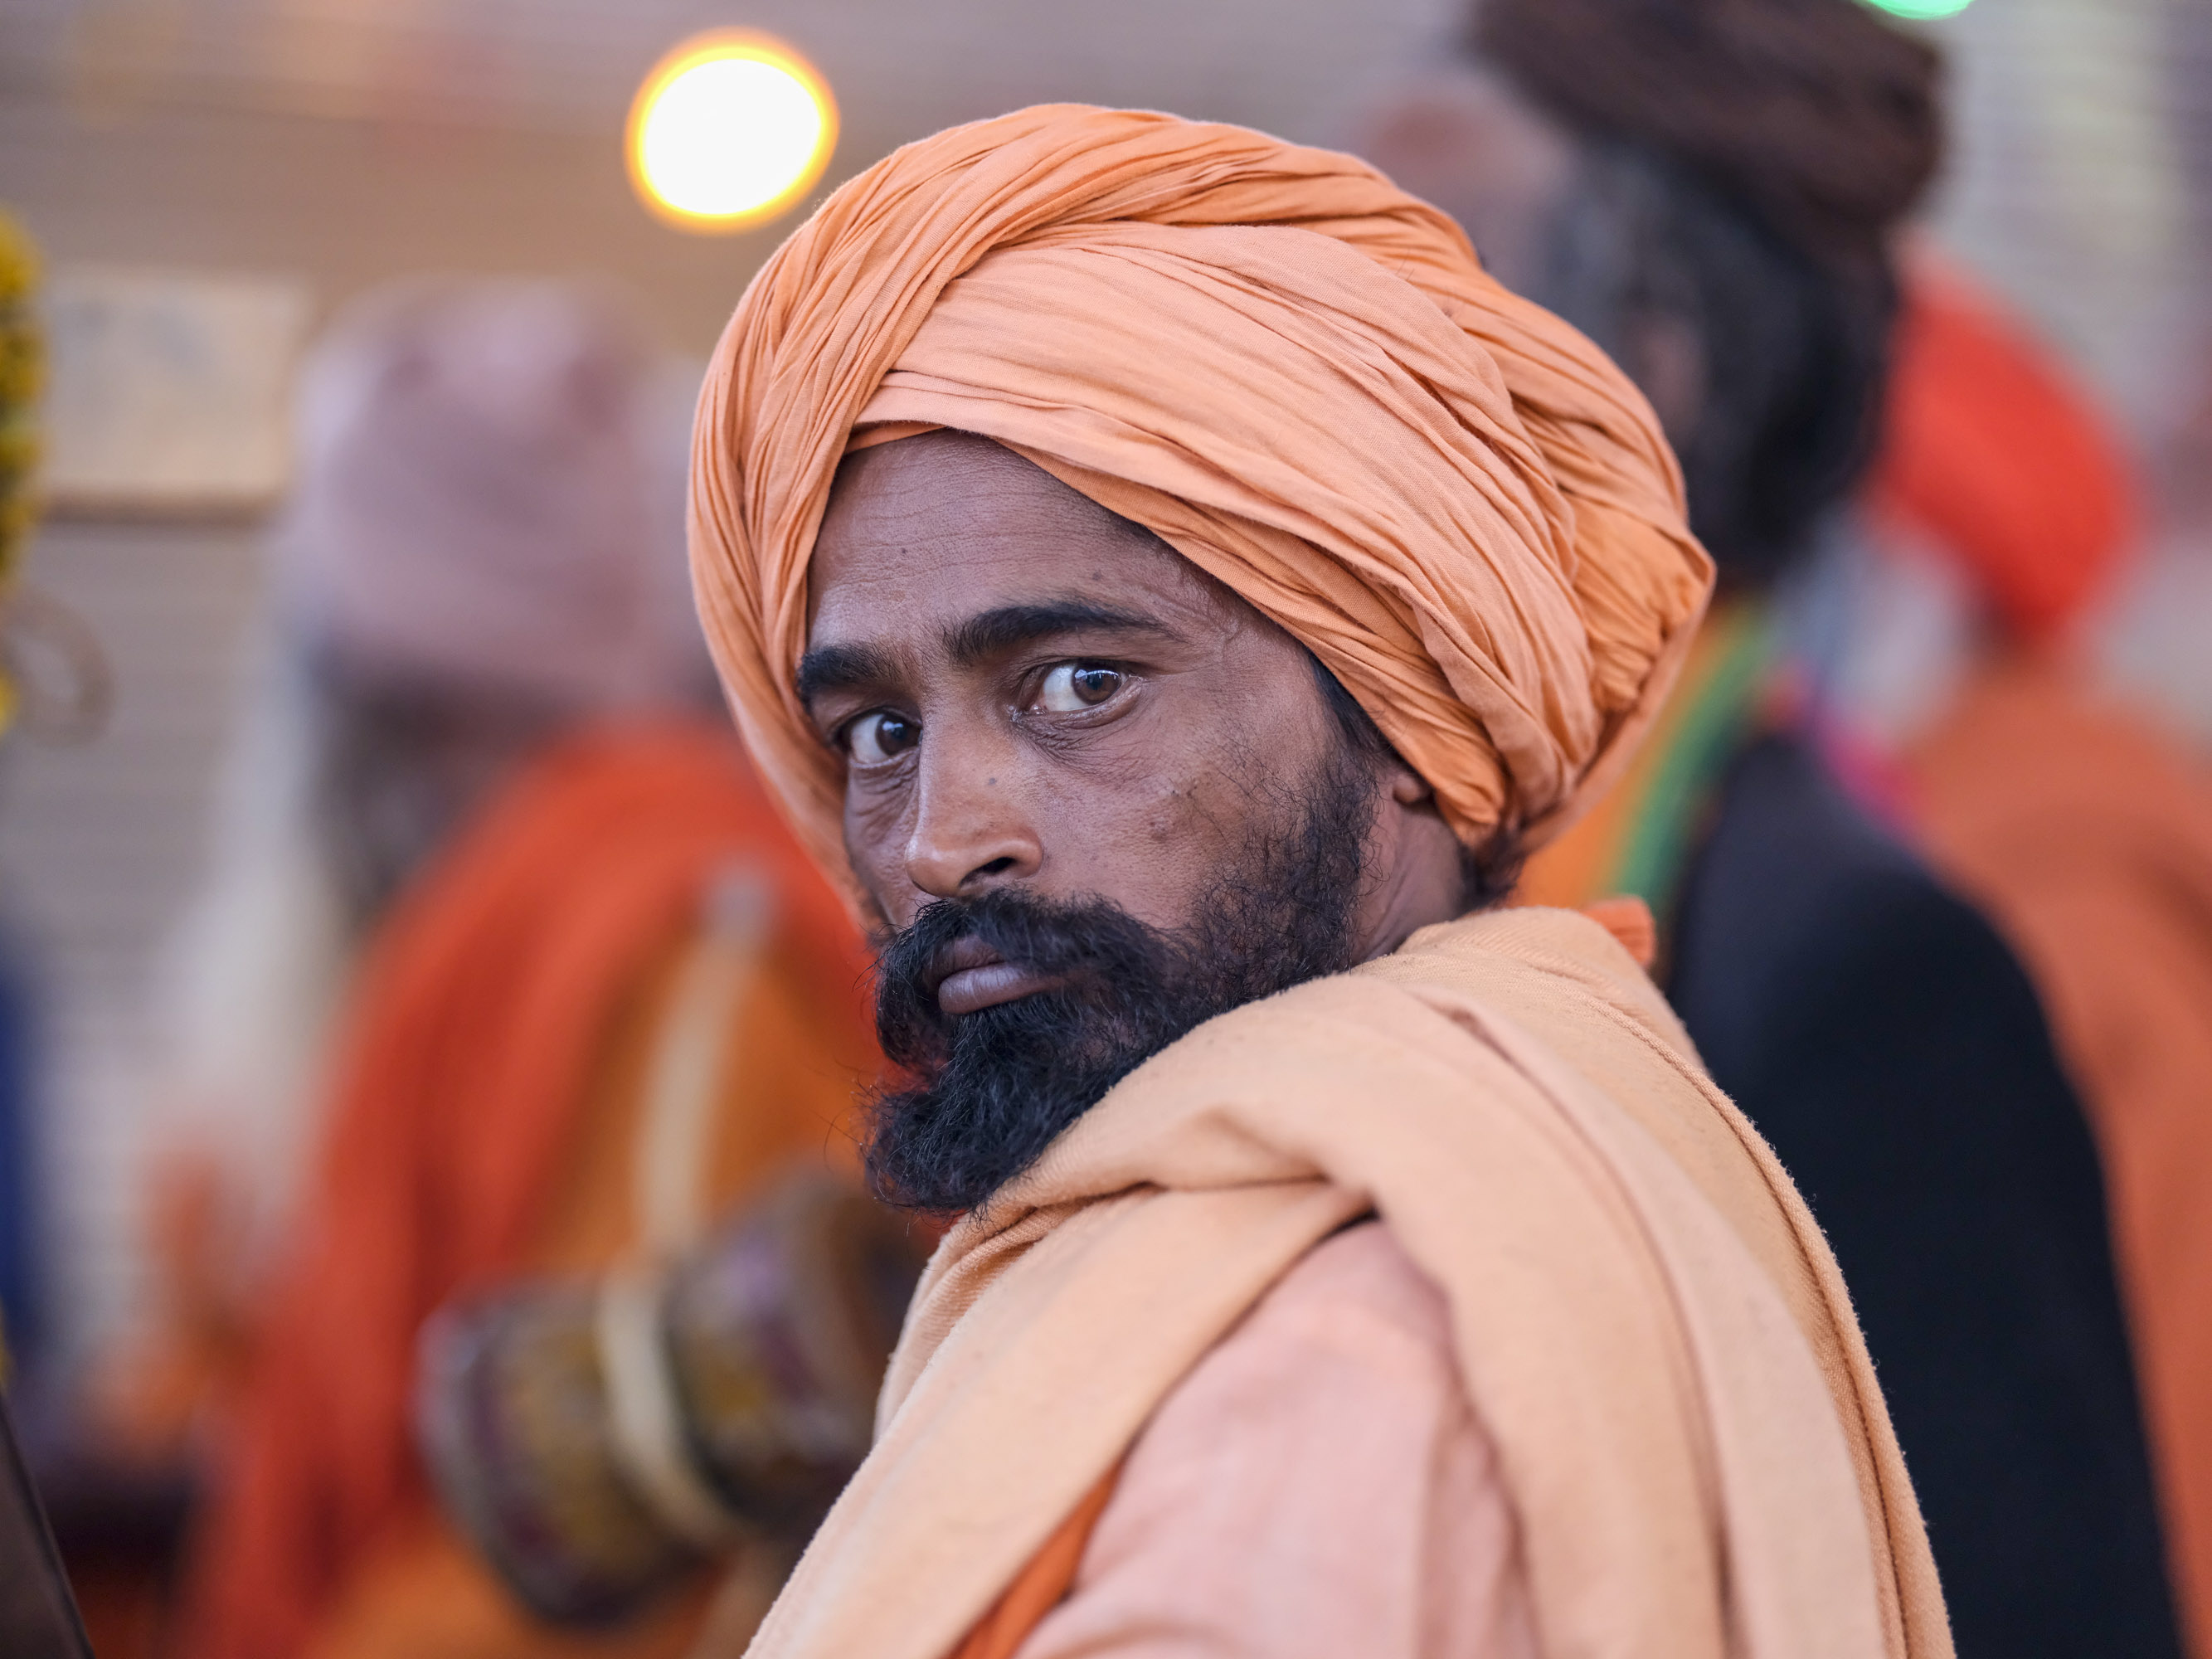 strong portrait pilgrims Kumbh mela 2019 India Allahabad Prayagraj Ardh hindu religious Festival event rivers photographer jose jeuland photography